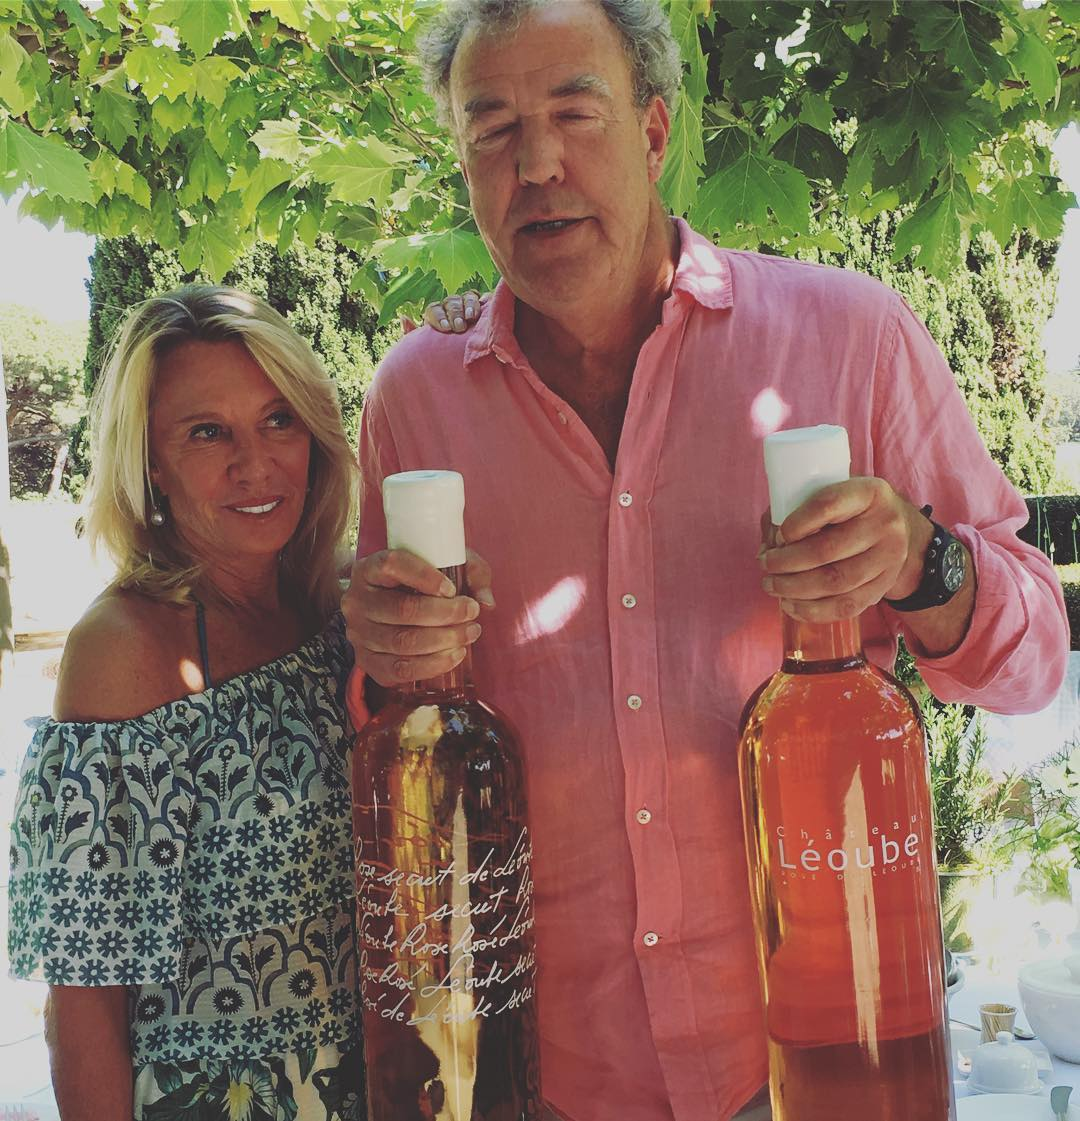 It's a pink day @leoube #jeremyclarkson #rose  #leoube #biodynamic